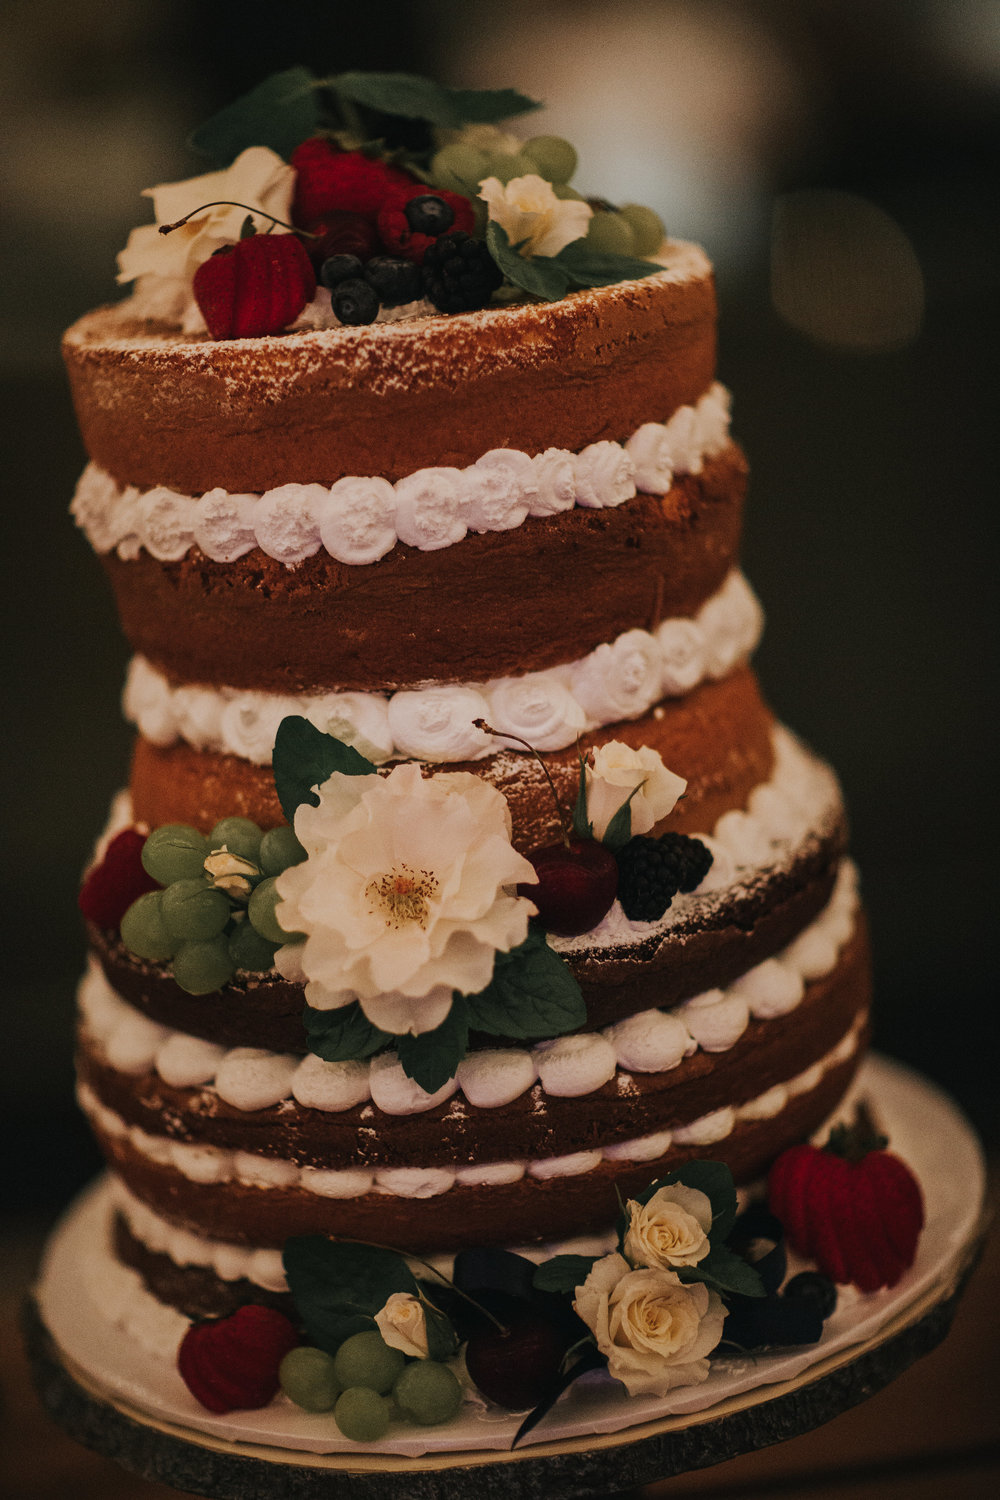 Naked wedding cake topped with fresh fruit and flowers made by a local vendor in the Temecula valley.